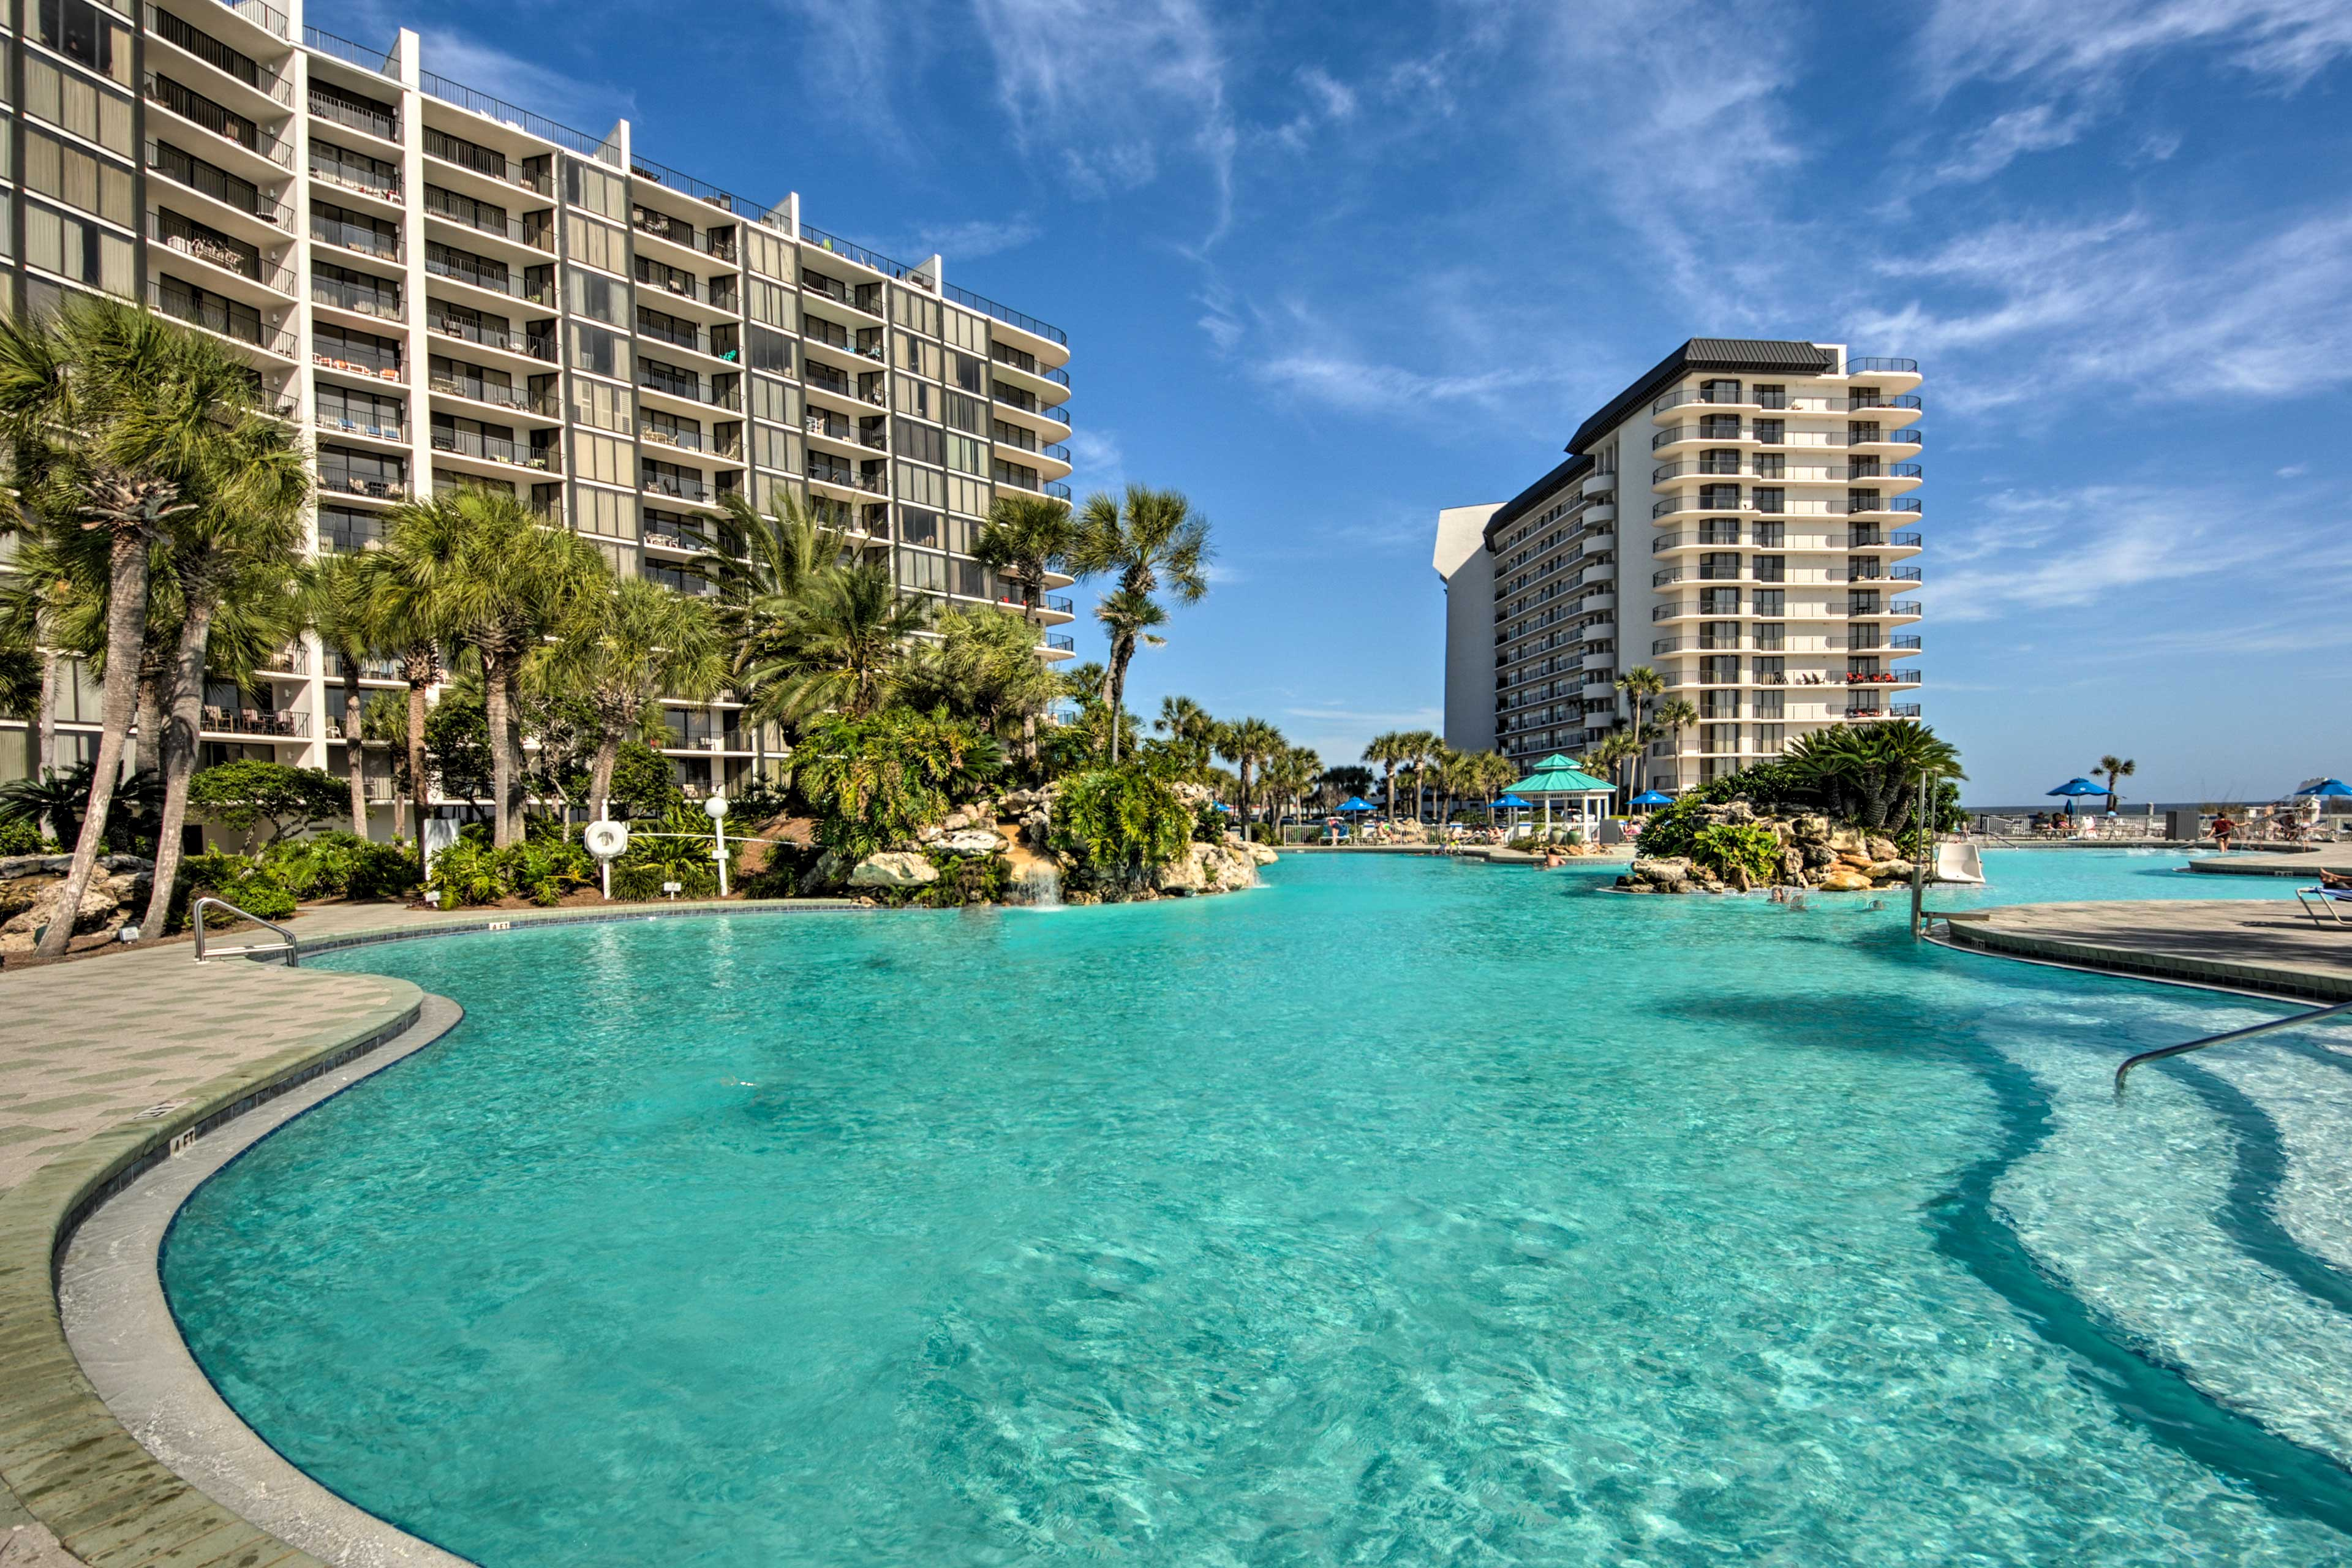 Dive into relaxation in the community pool.